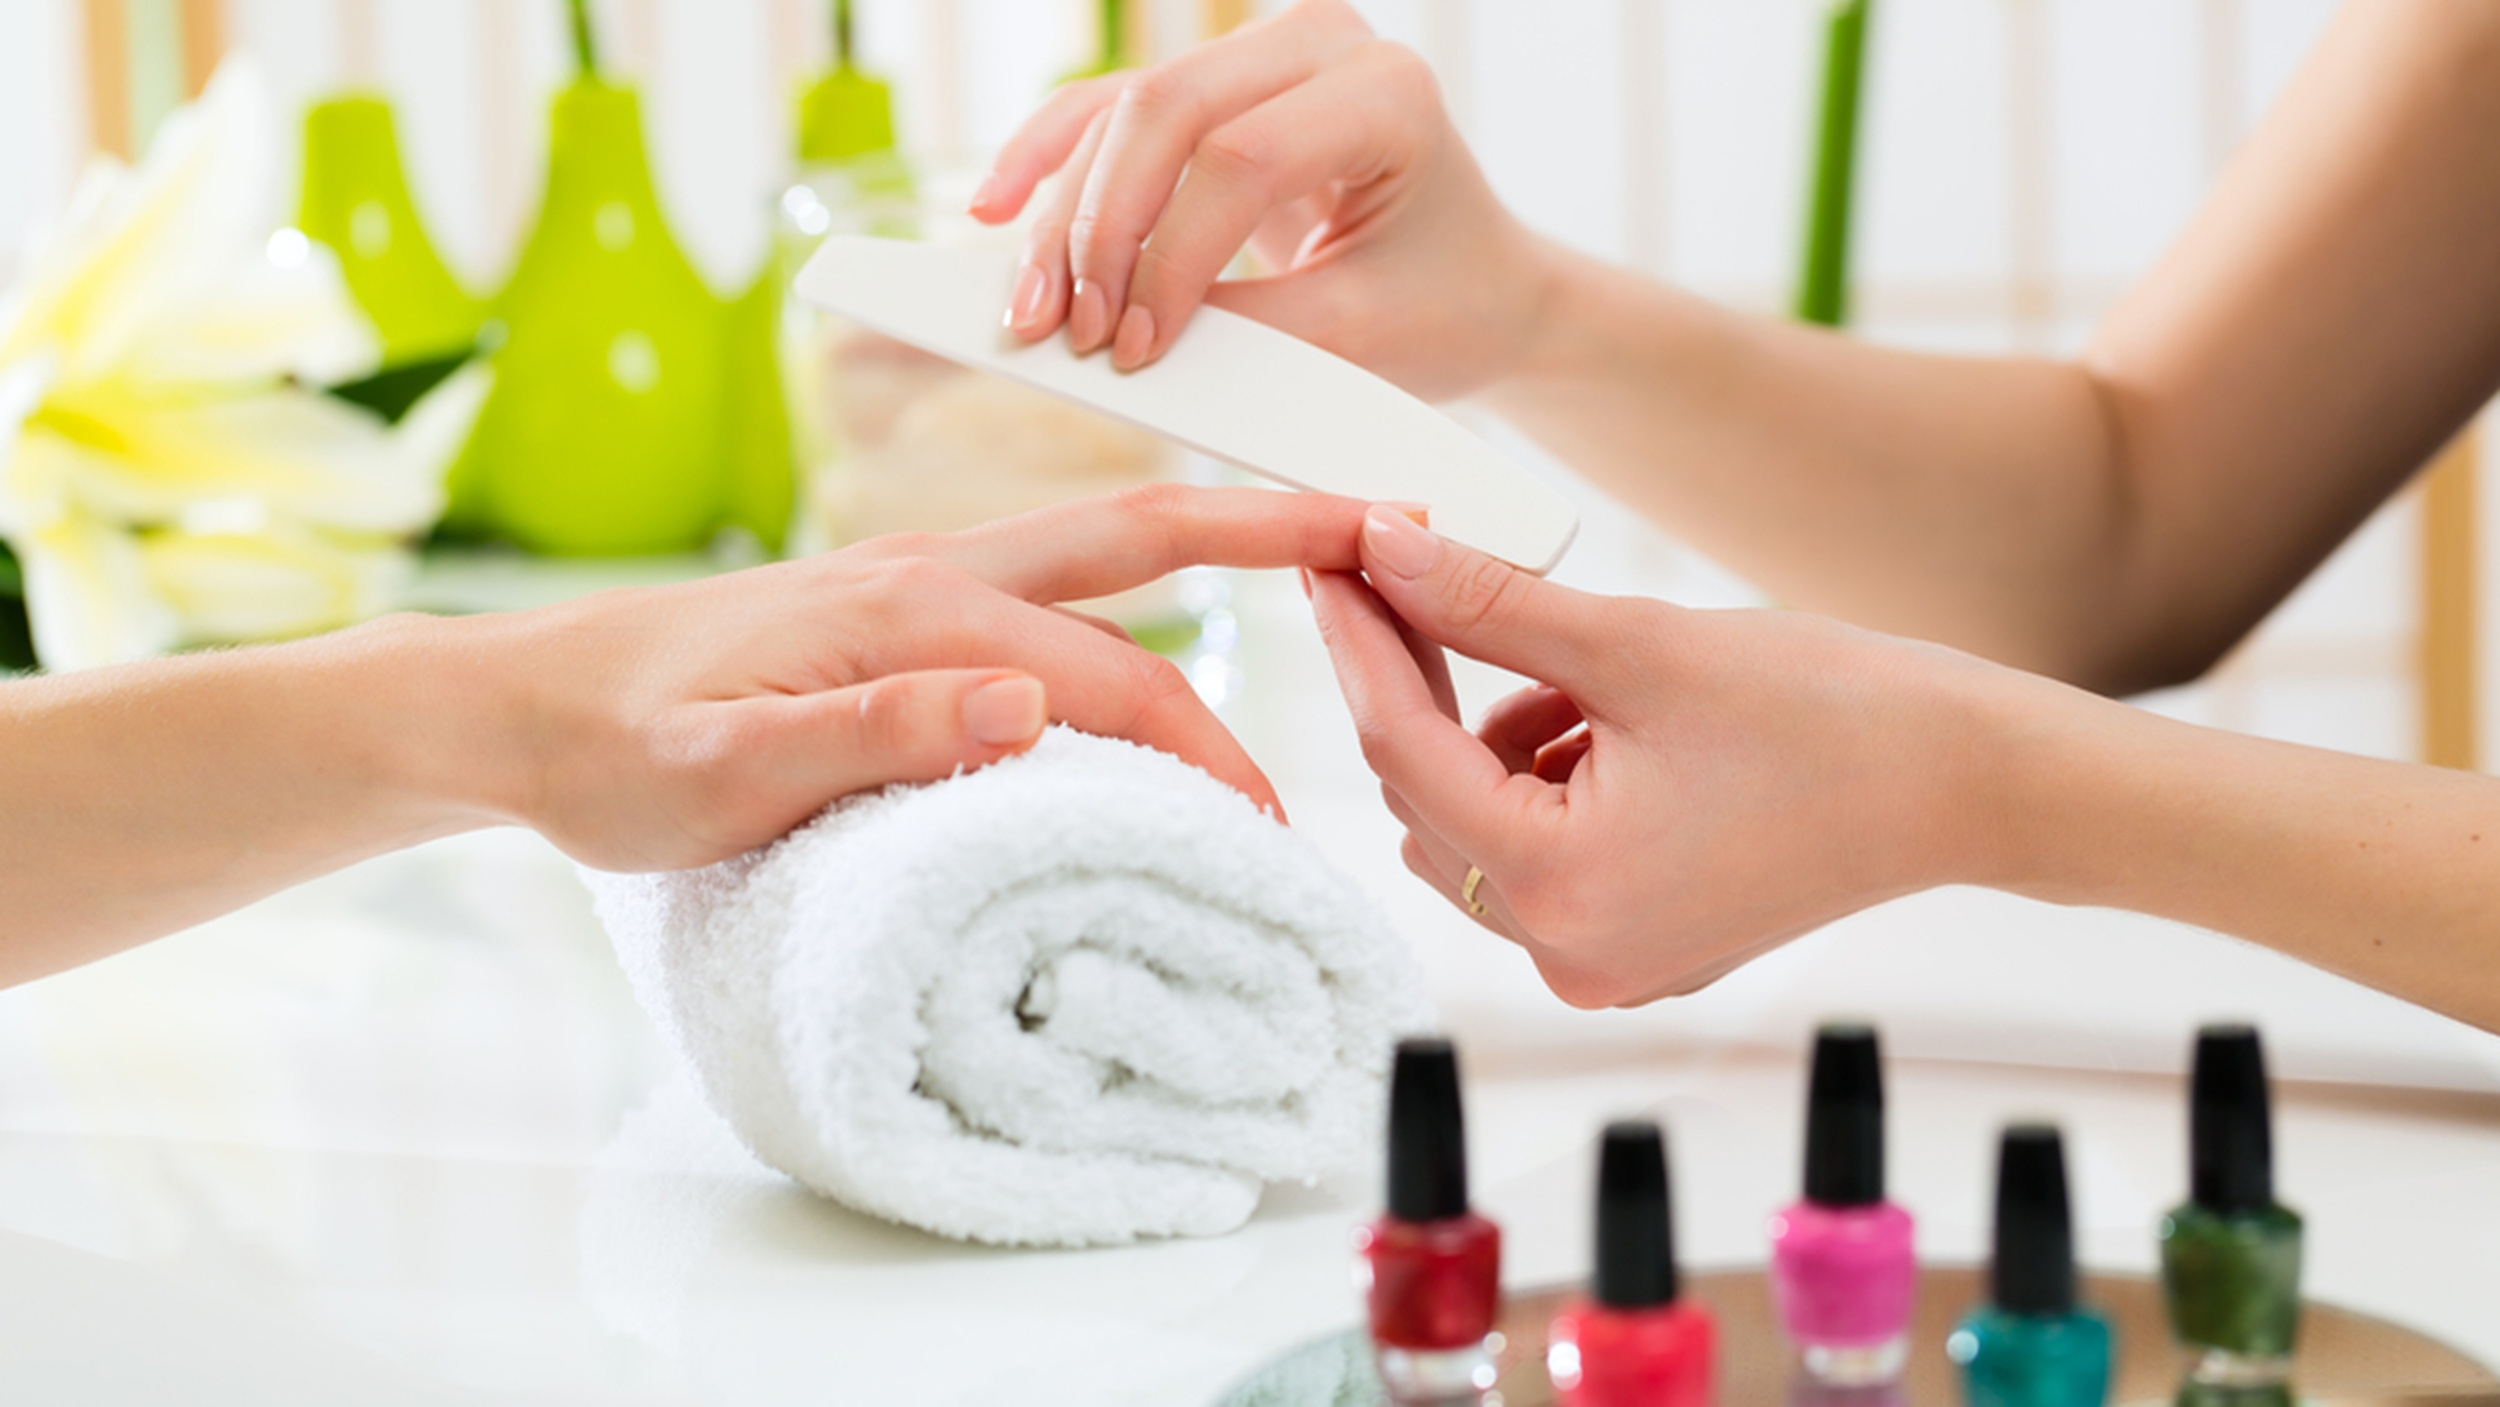 NAIL AND BEAUTY SALON - NORTHERN BEACHES FOR SALE